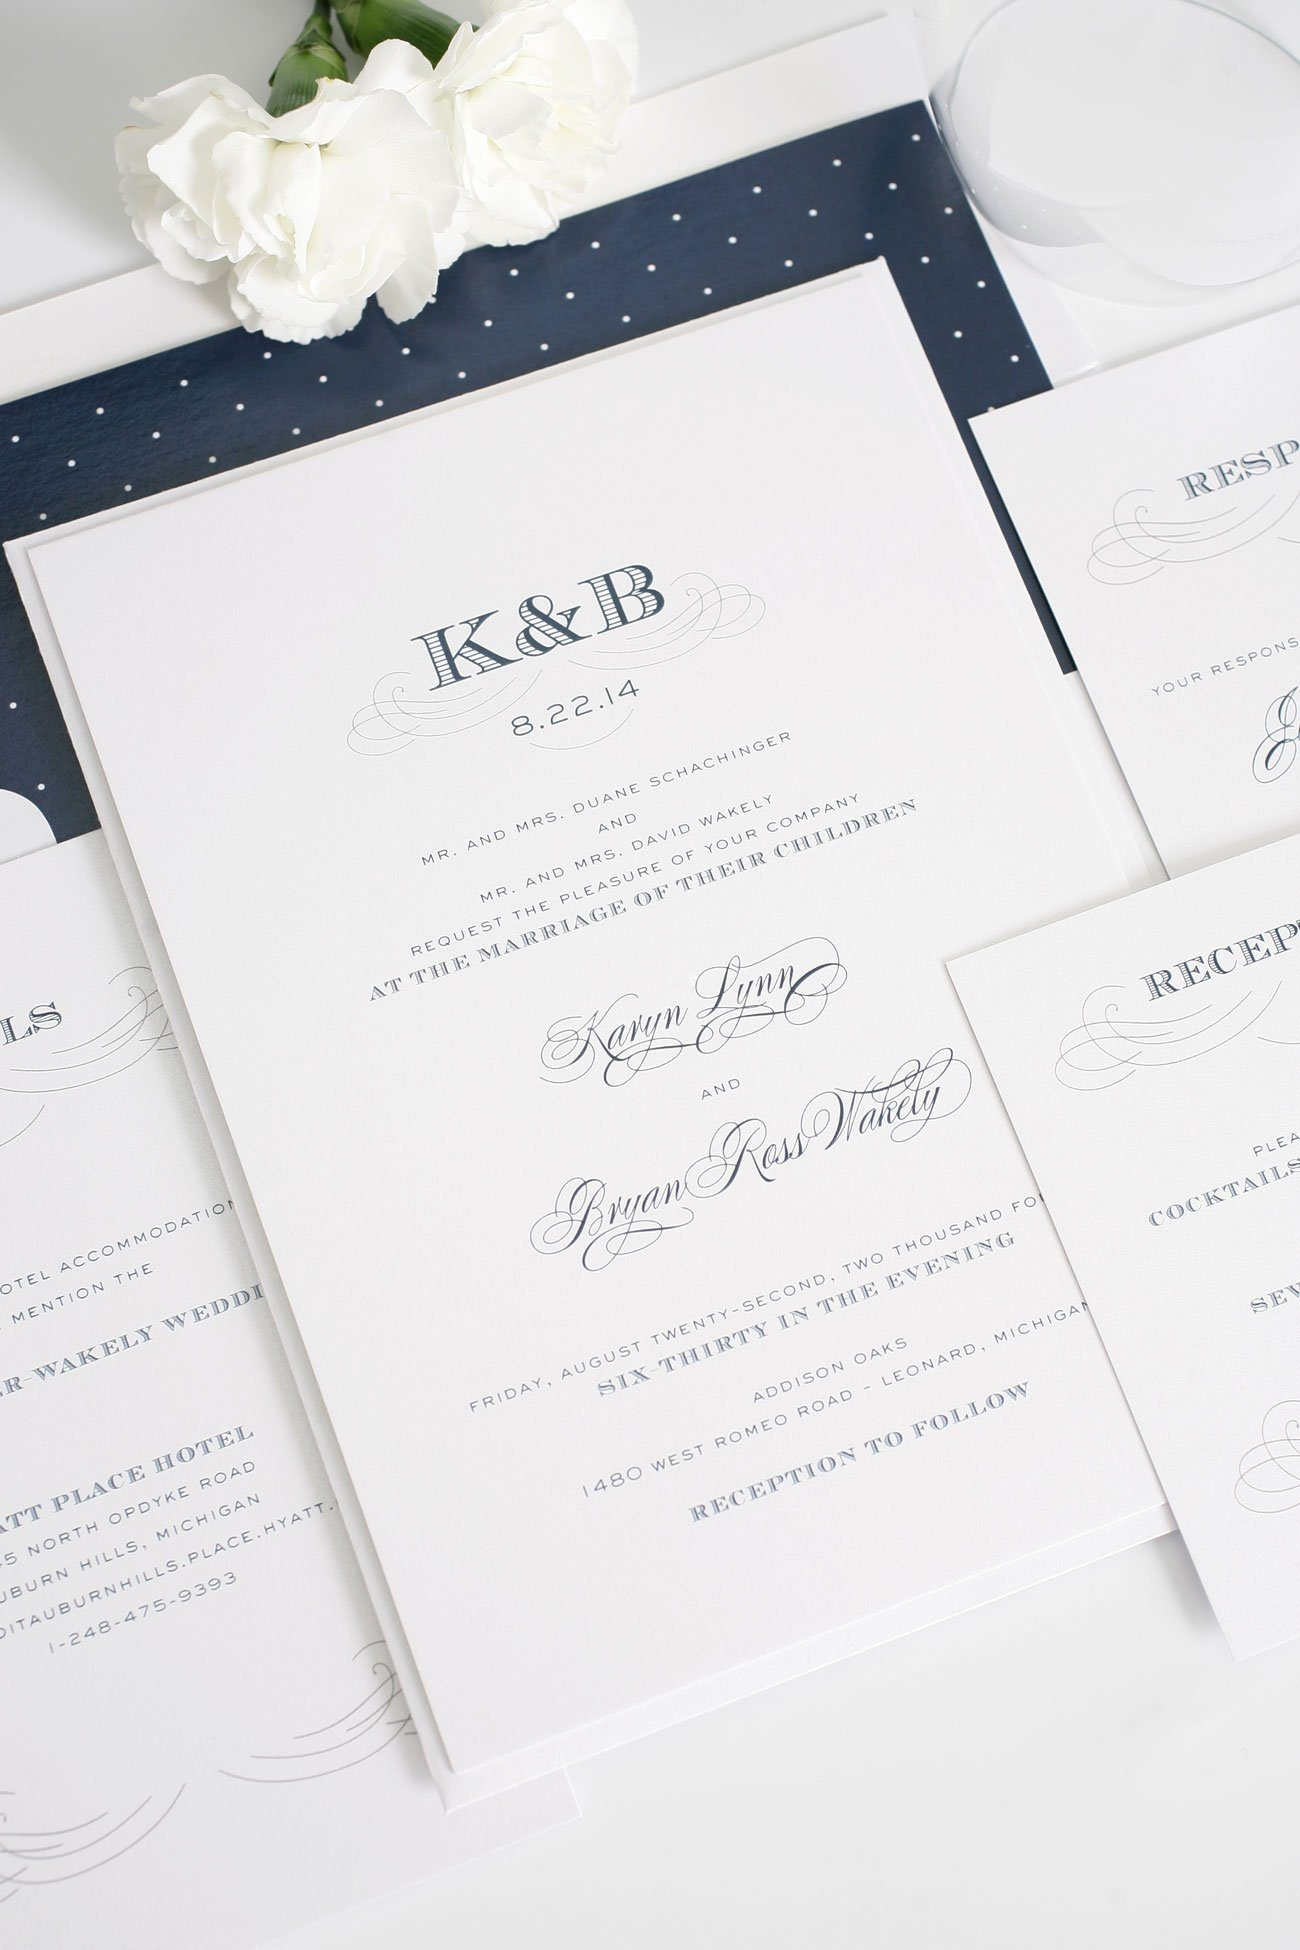 Antique wedding invitations with monogram